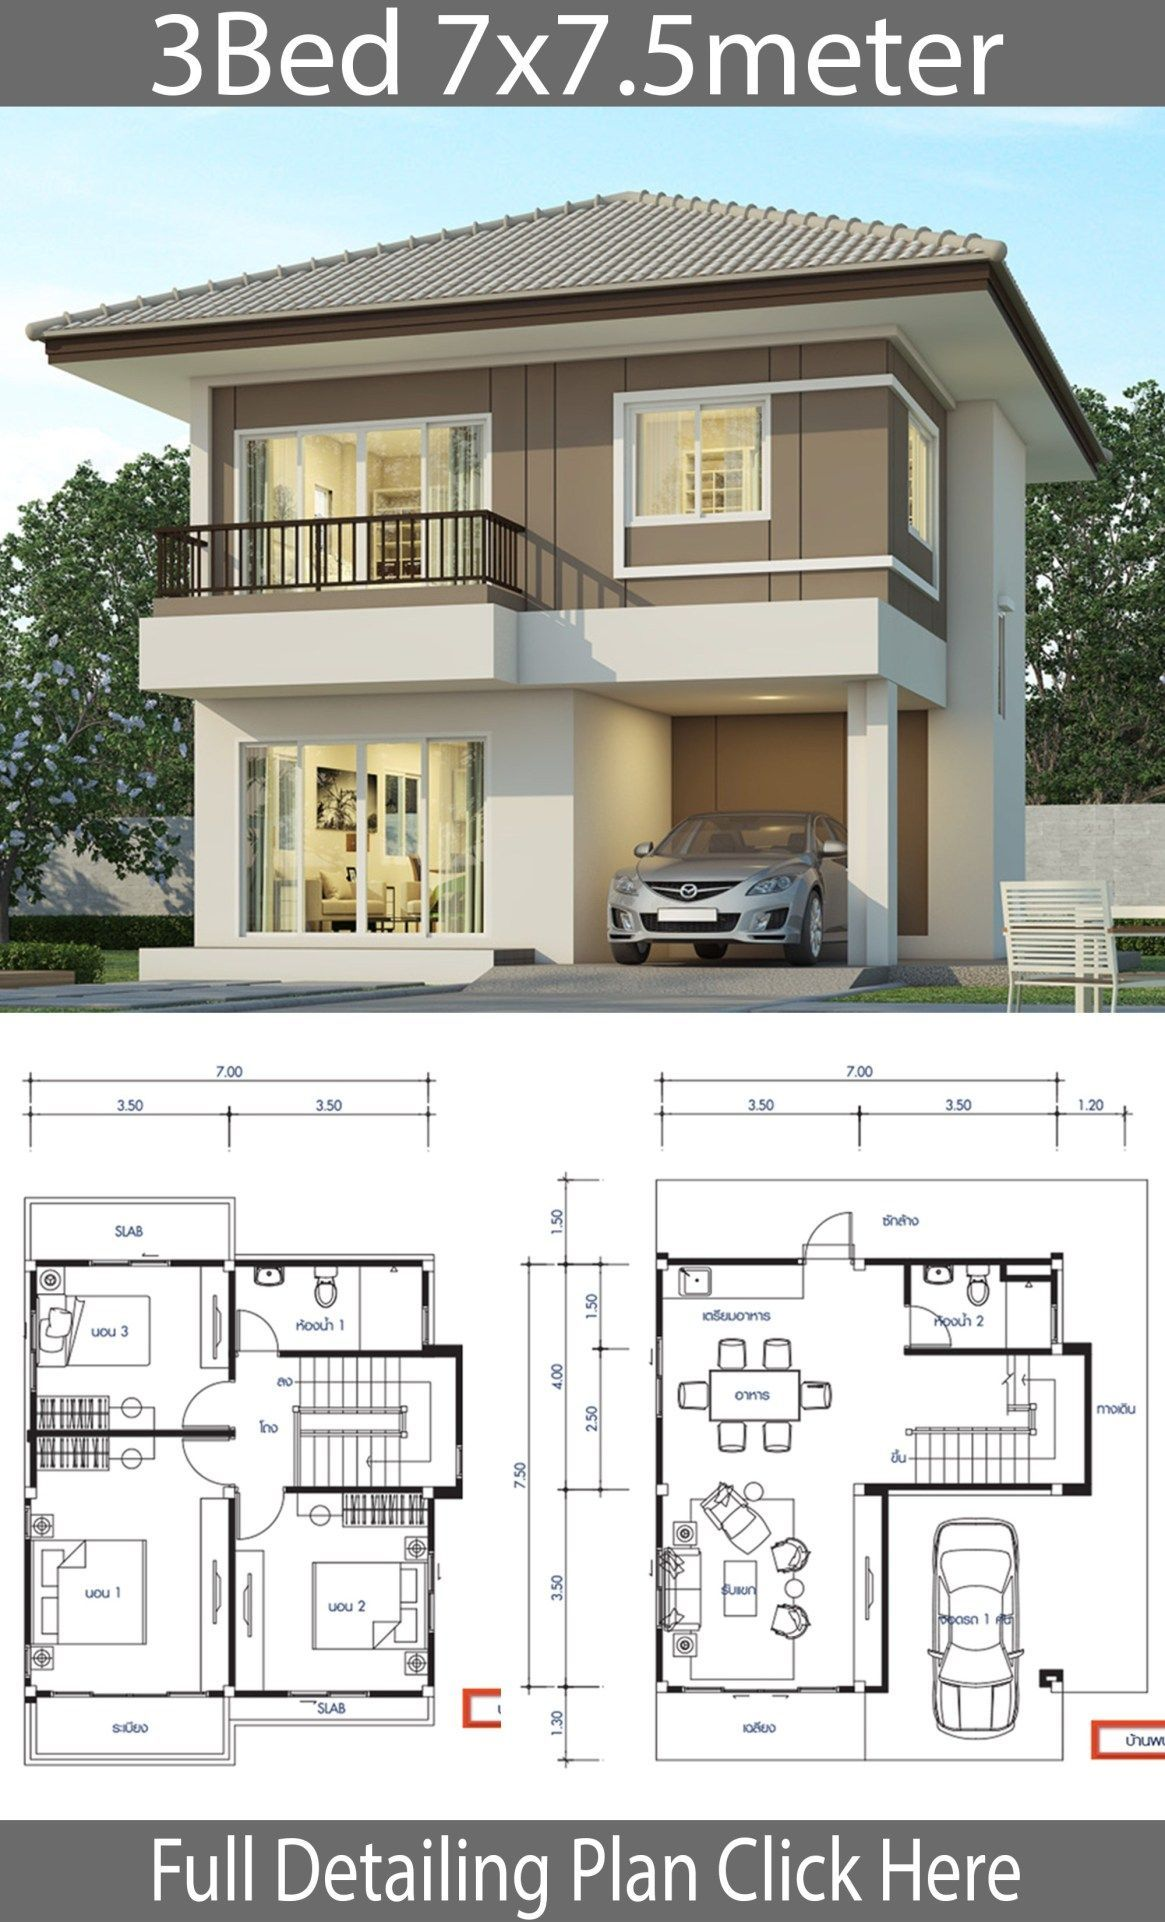 15 Genius Ideas How To Upgrade 3 Bedroom Modern House Design In 2020 Duplex House Design 2 Storey House Design Simple House Design